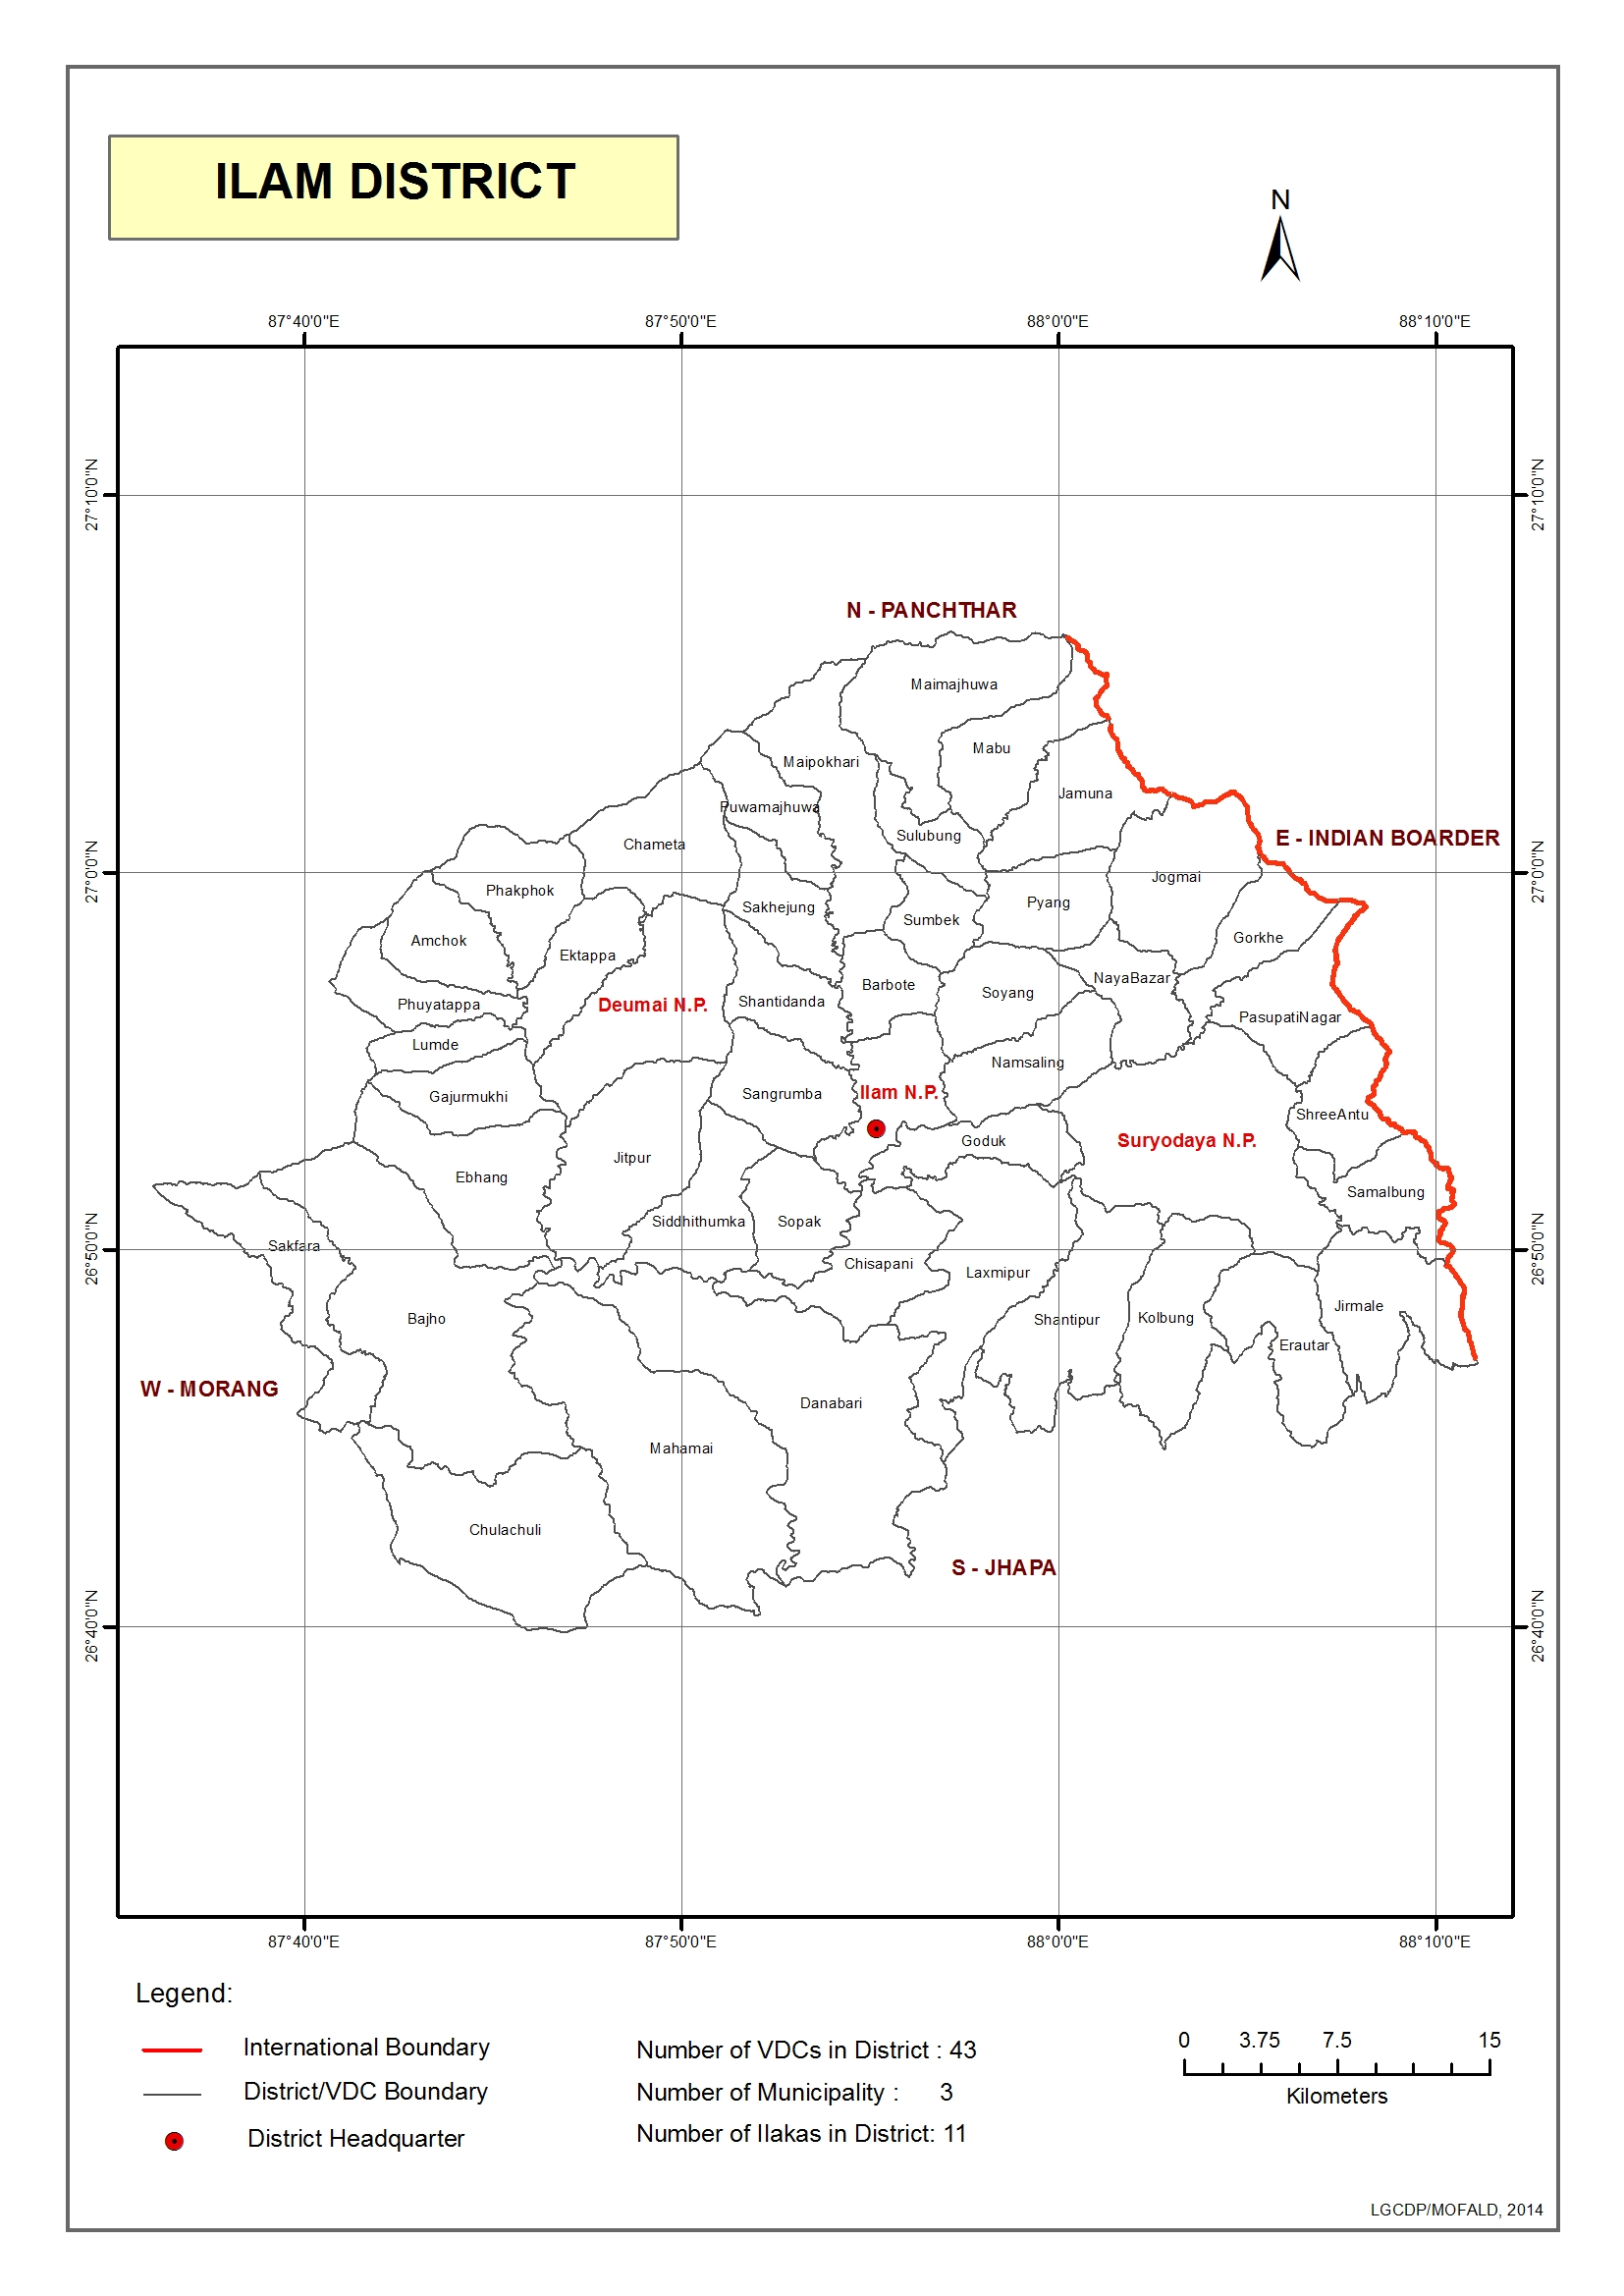 GIS District Map Local Governance And Community Development - Ilam map